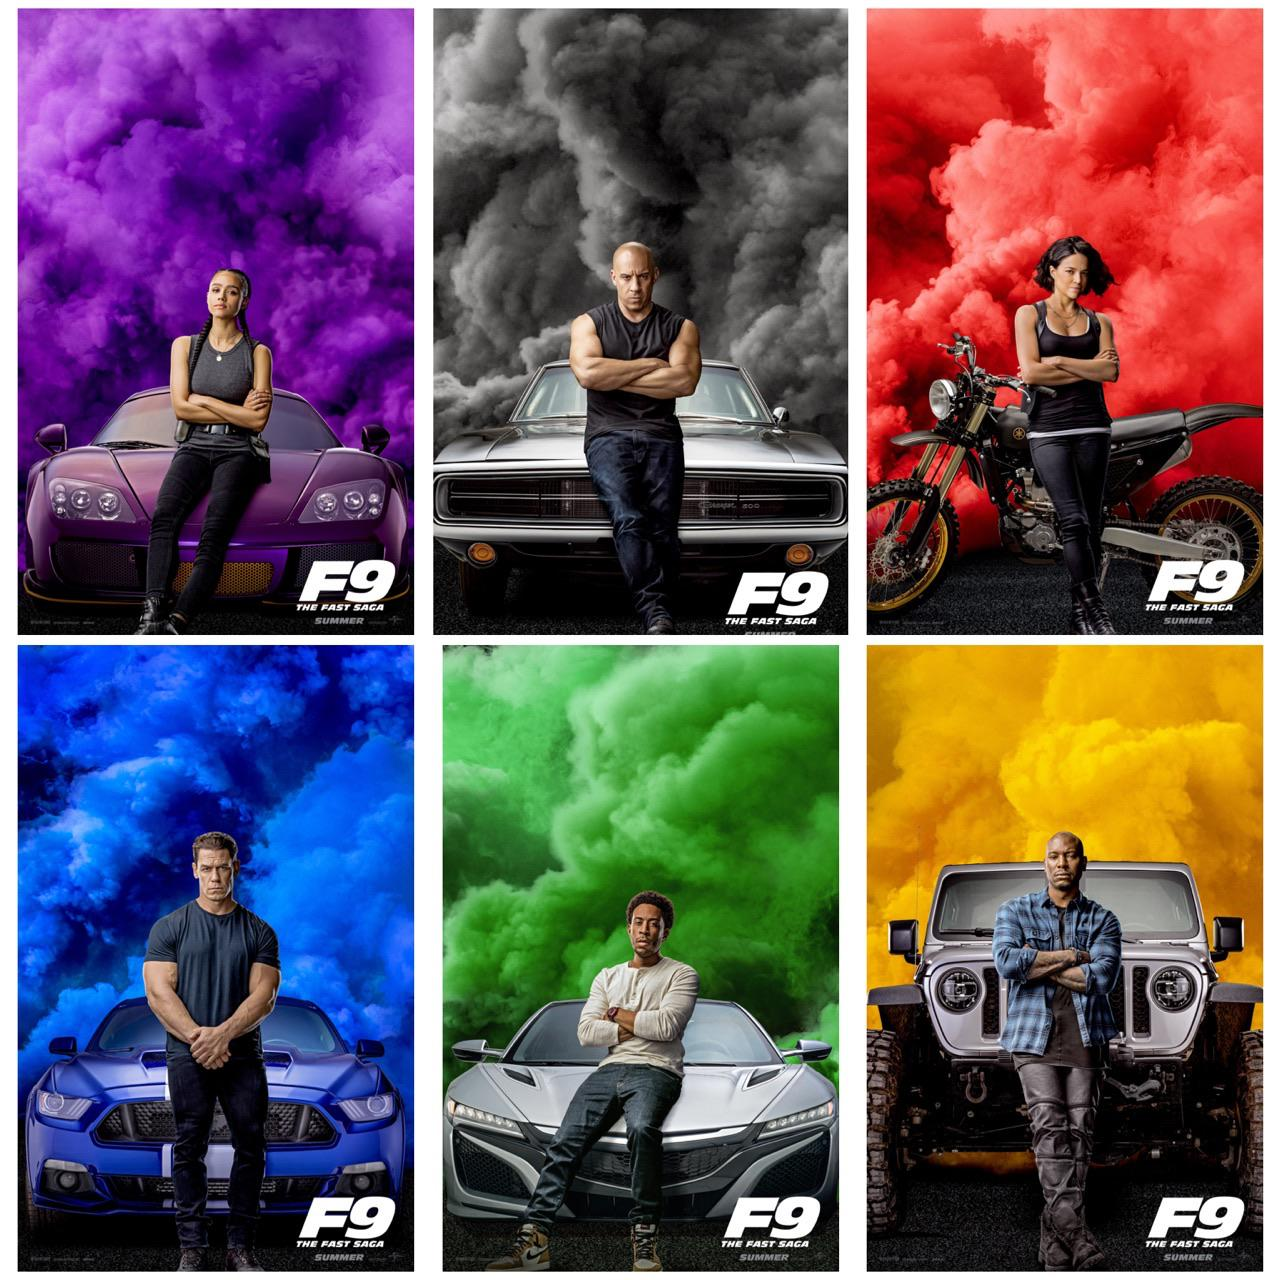 furious 9 official character posters